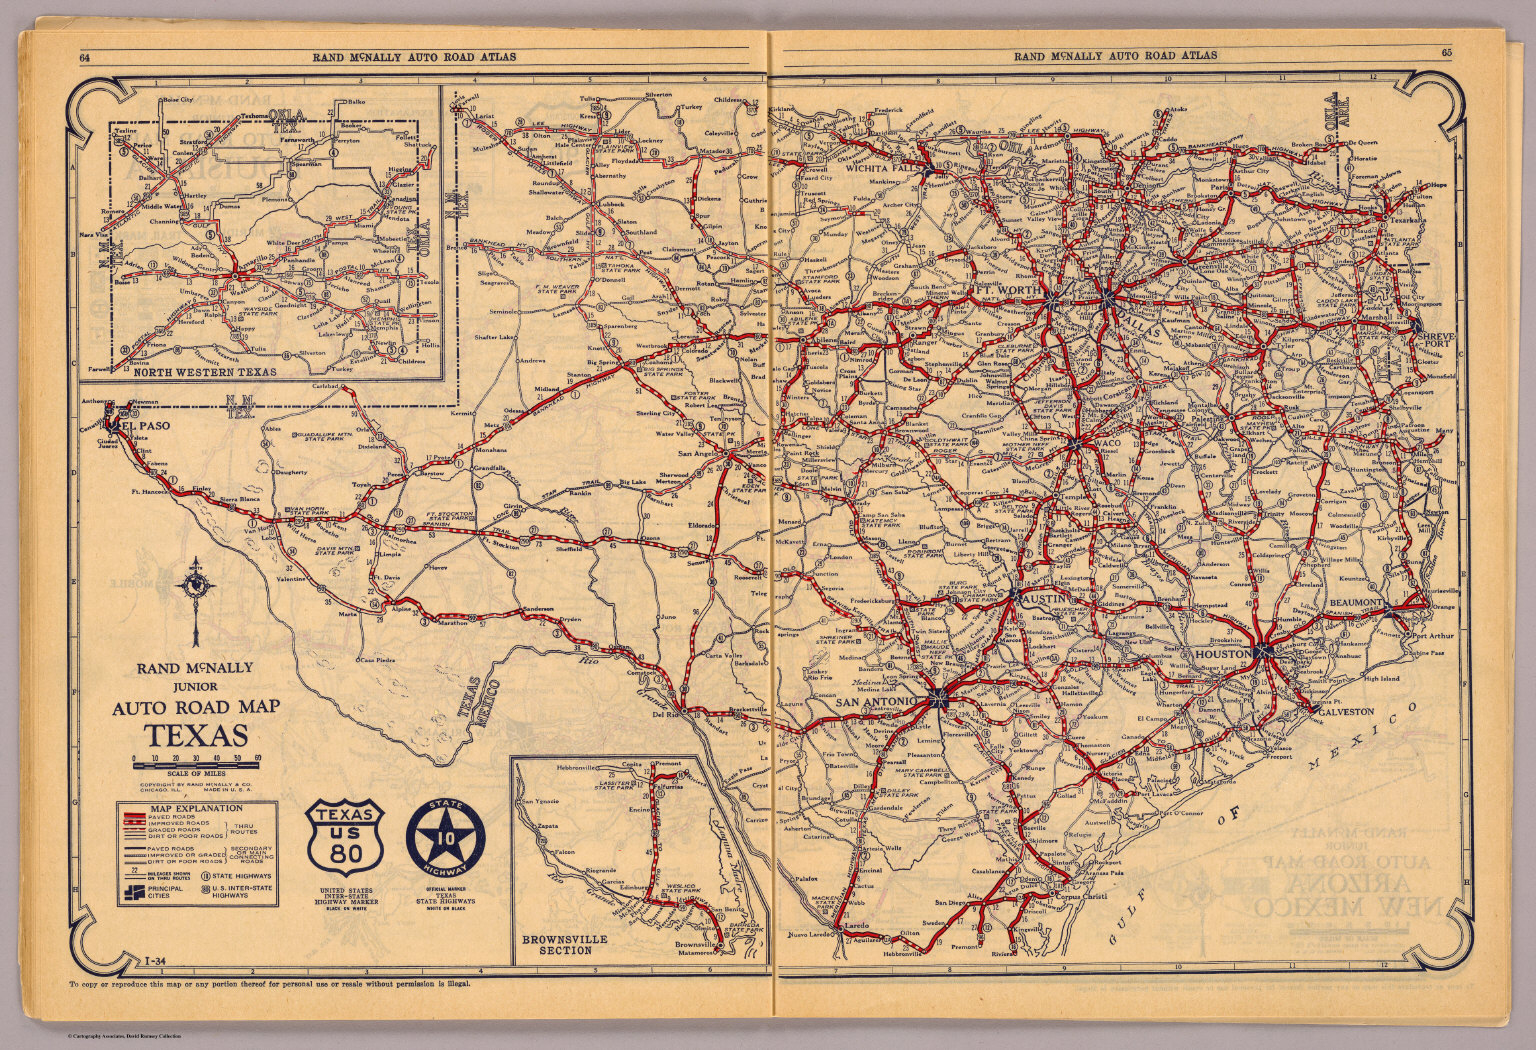 Texas. - David Rumsey Historical Map Collection - Texas Historical Maps